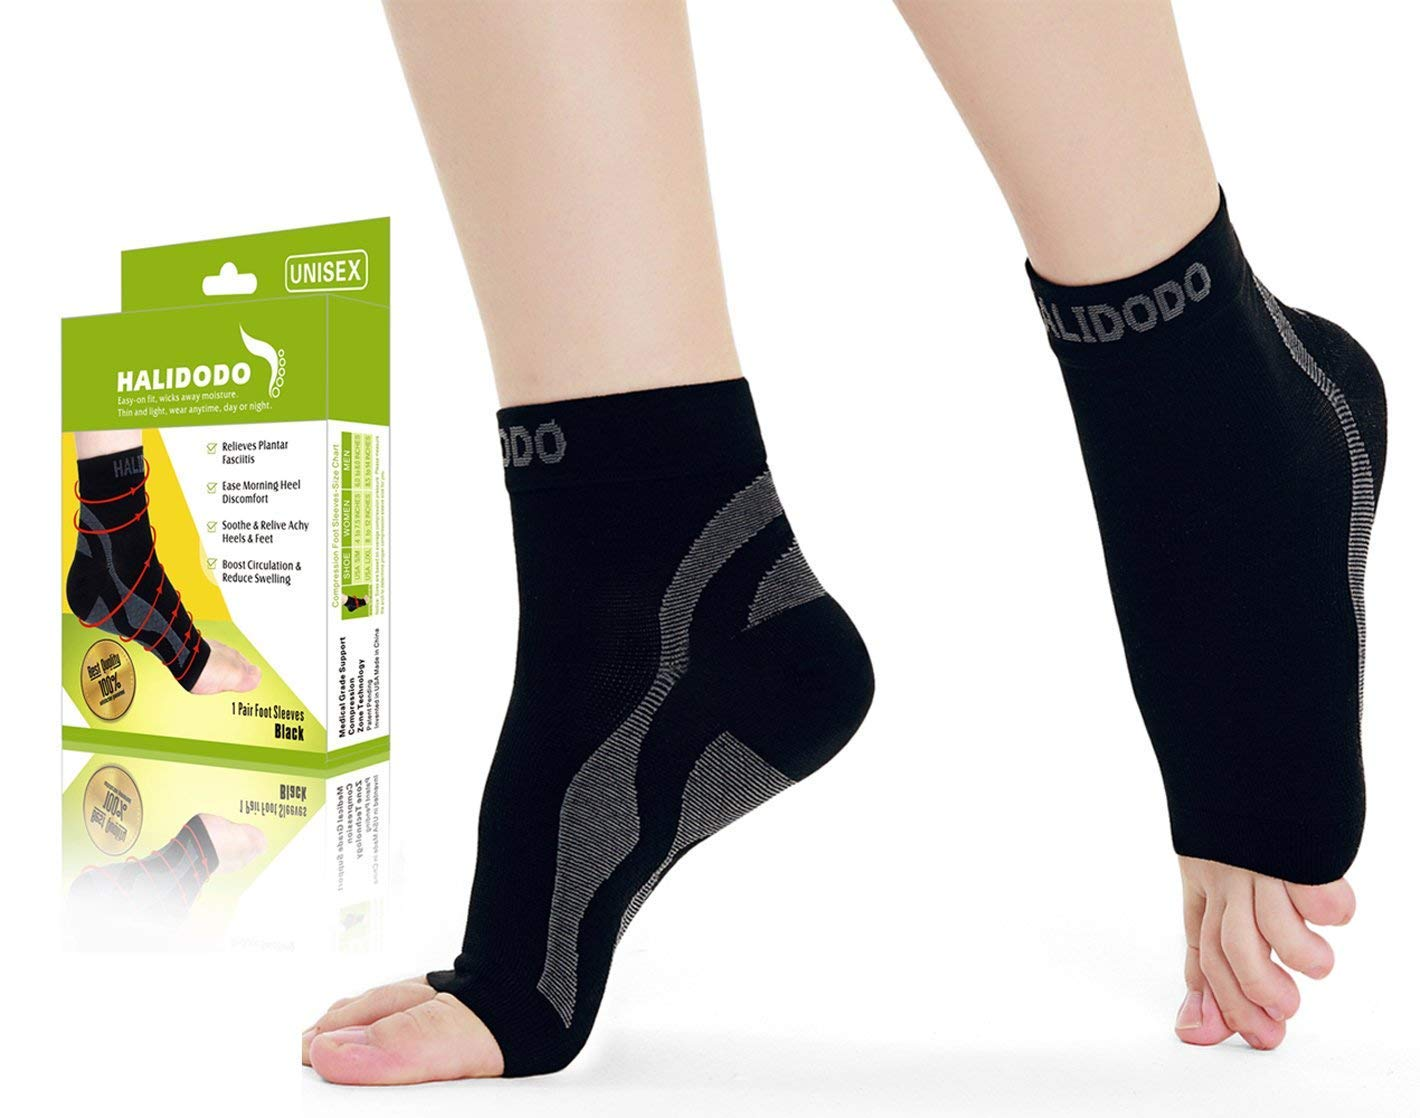 f9e47253dc Amazon.com: Plantar Fasciitis Compression Socks with Arch Support,  Compression Foot Sleeve Eases Swelling and Heel Spurs, Ankle Brace Support,  ...